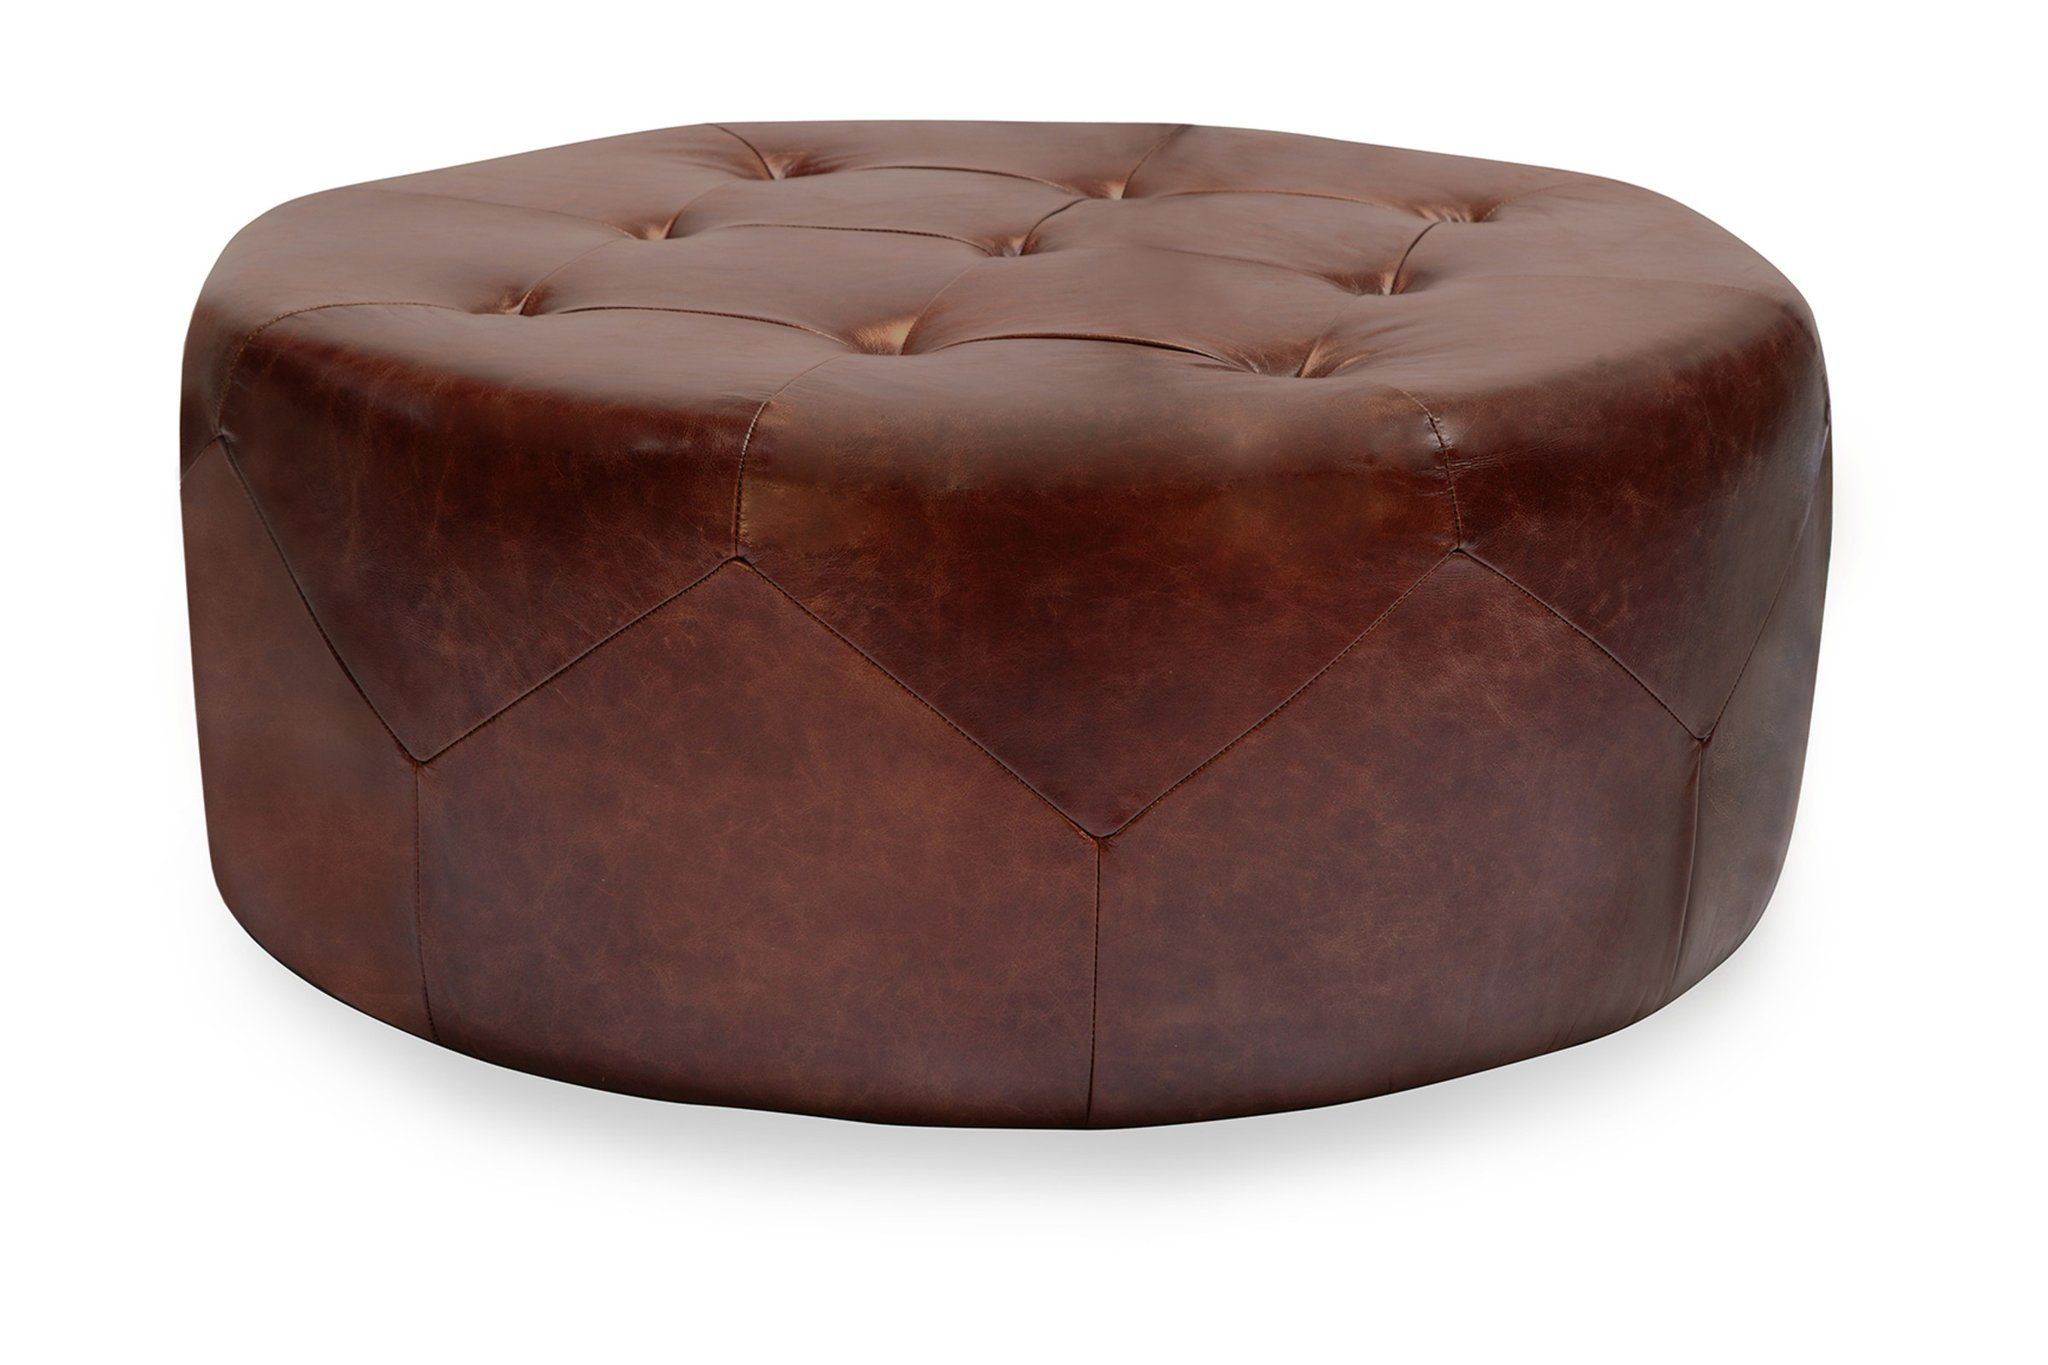 Freeman Ottoman Leather Ottoman Ottoman Tweed Furniture